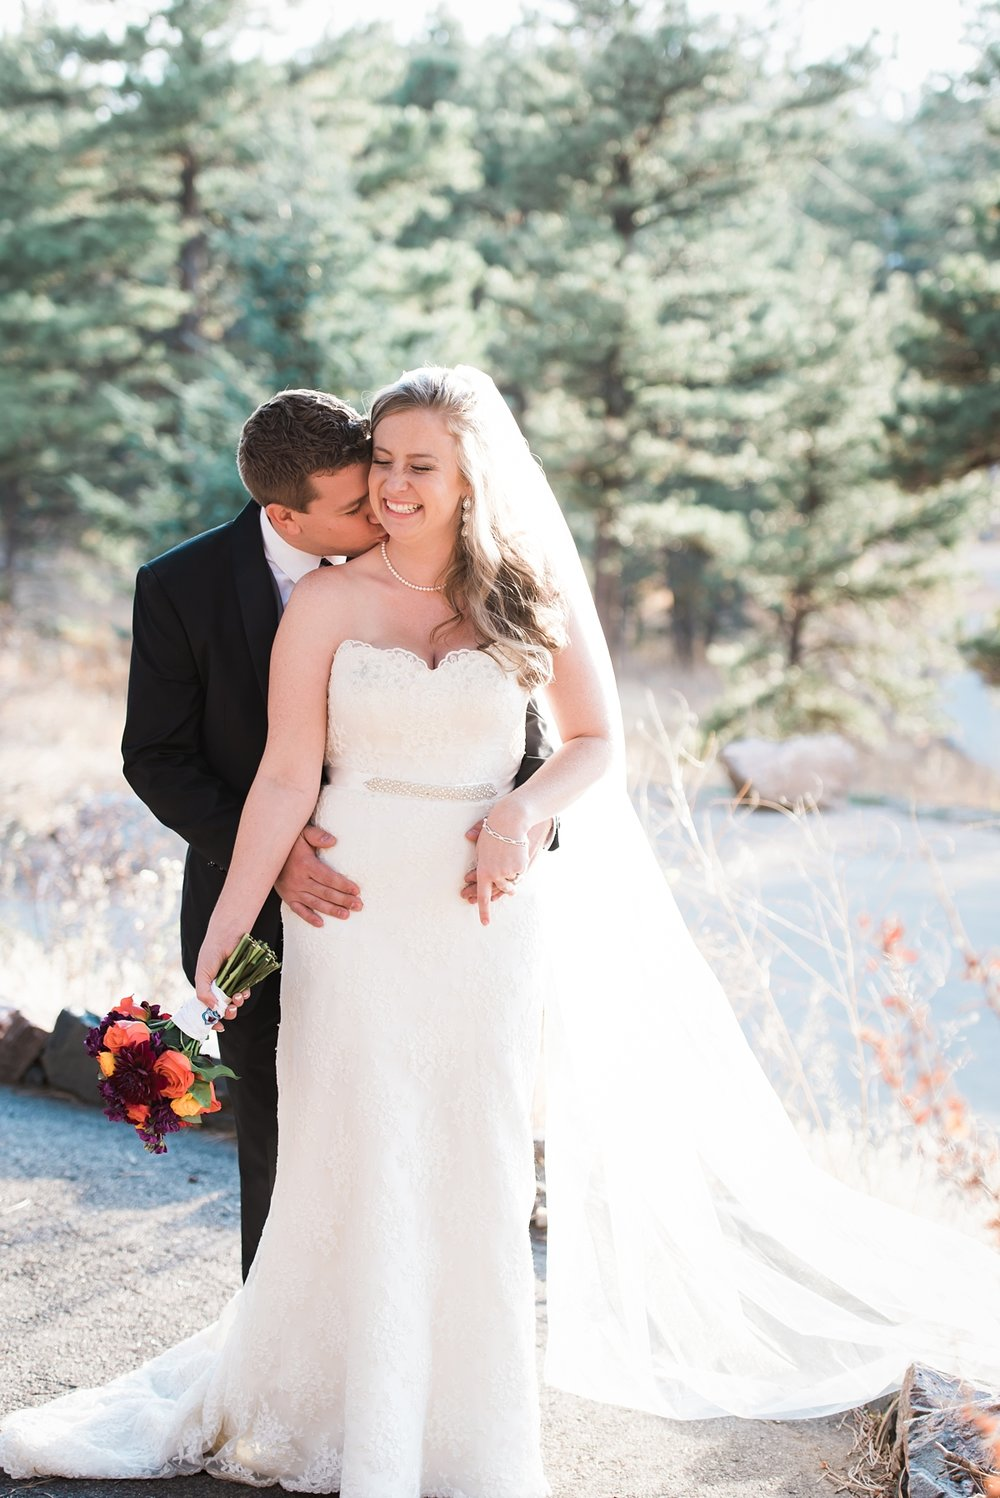 Amanda + James had a beautiful Fall wedding at Chief Hosa Lodge.